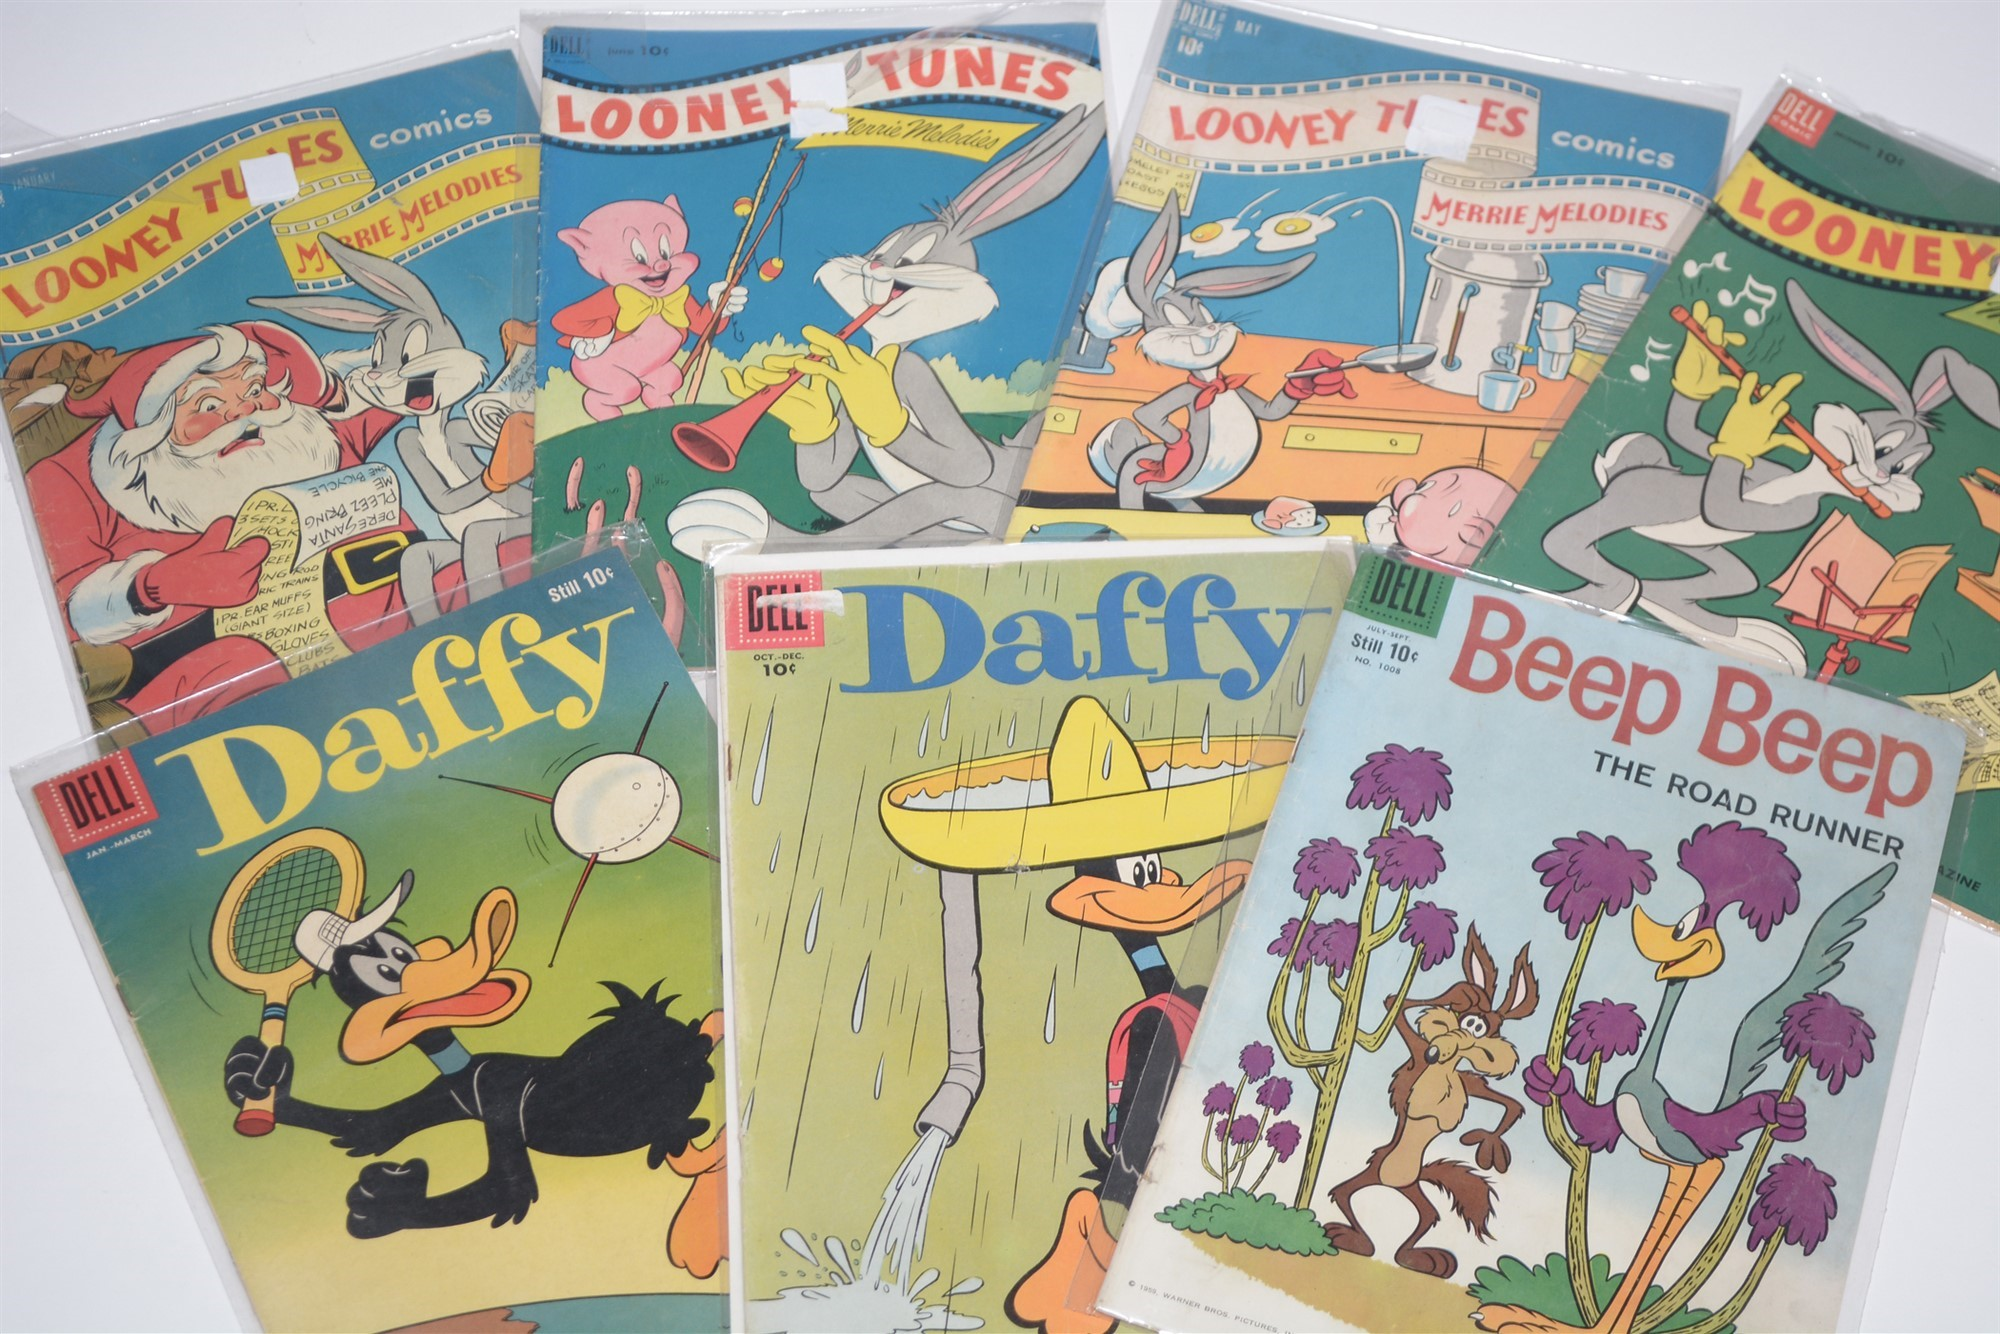 Dell Comics, humour titles including: Road Runner, Daffy and Looney Tunes: and New Funnies Woody - Image 4 of 4